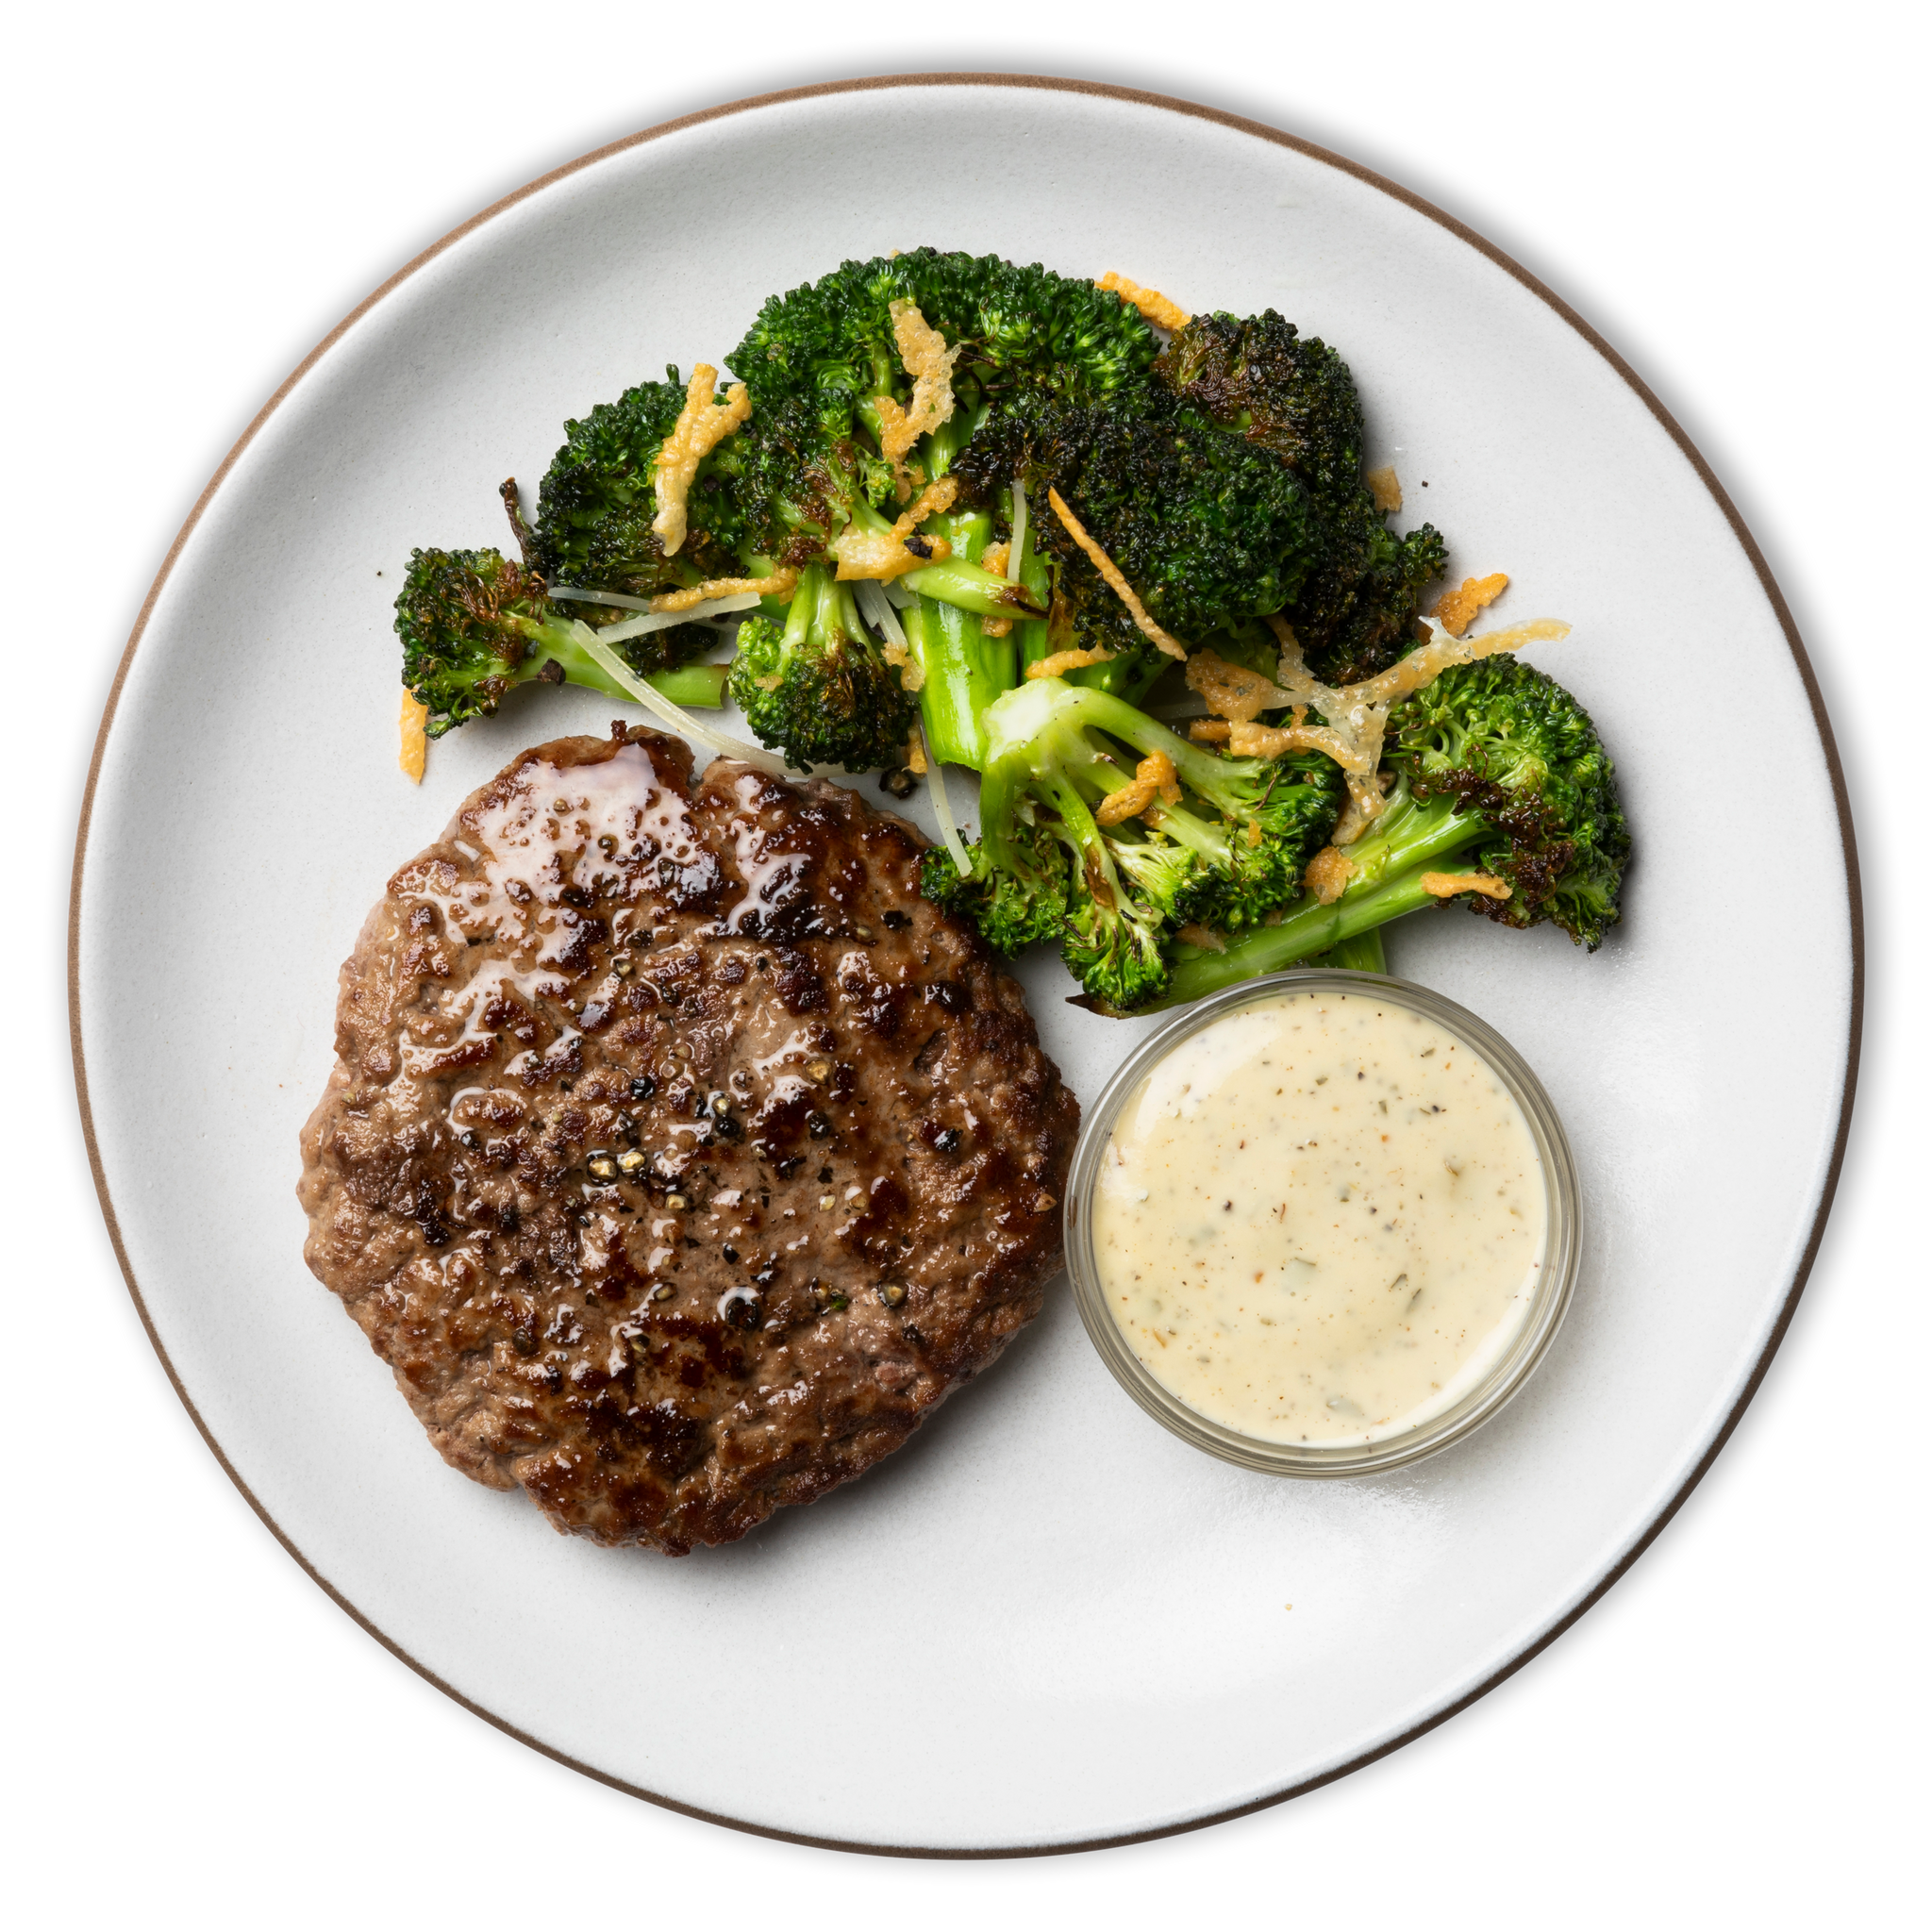 Ranch Burger with Roasted Parmesan Broccoli